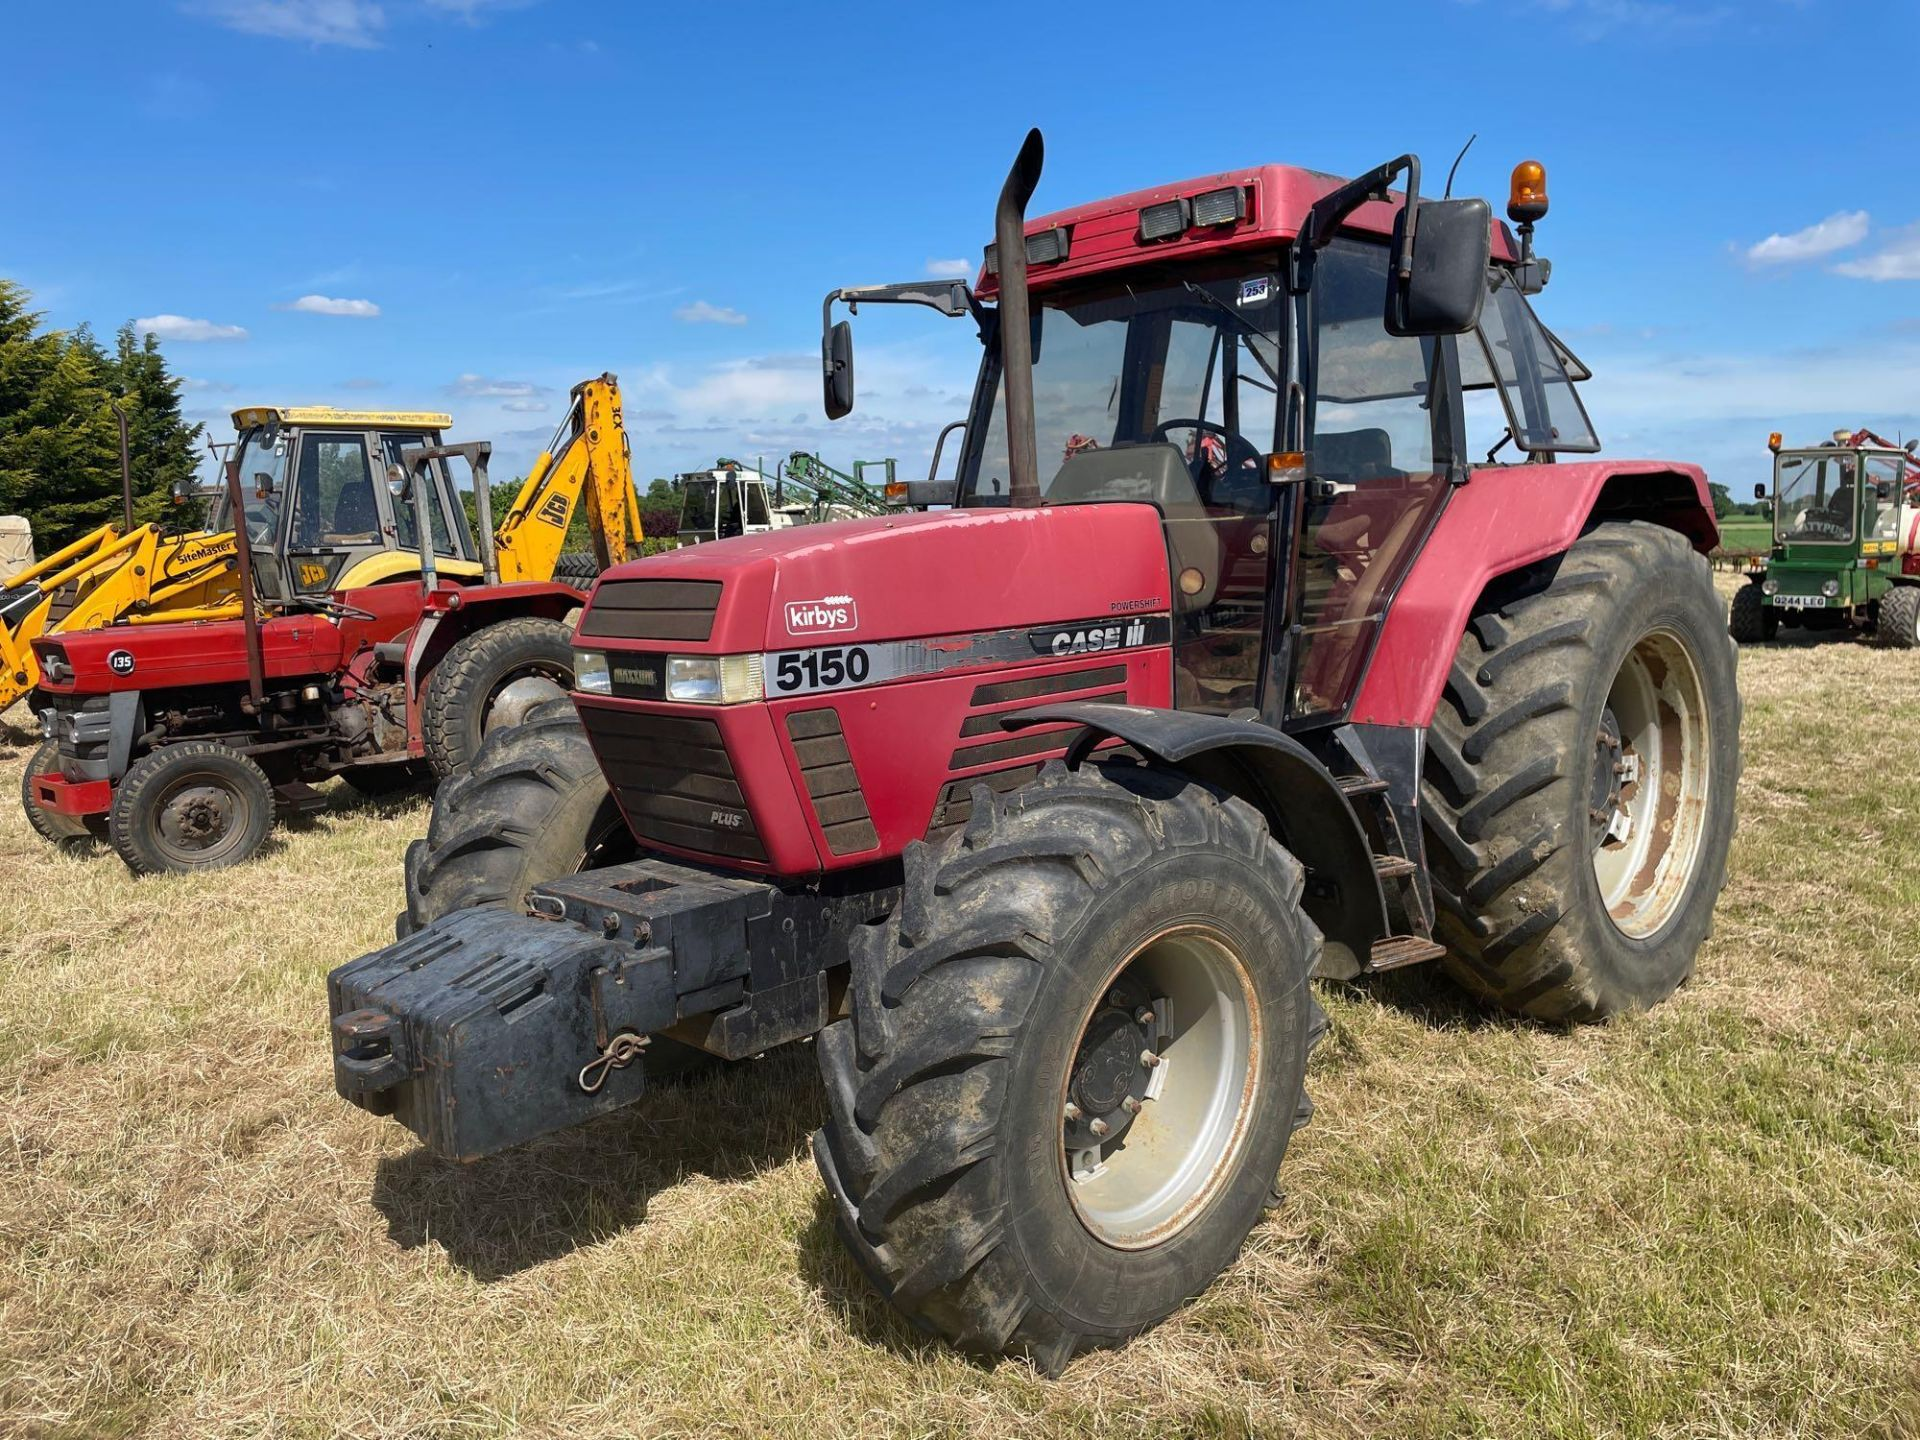 1997 Case IH 5150 Maxxum Plus Powershift 4wd tractor with 2 spools, PUH and front wafer weights on 1